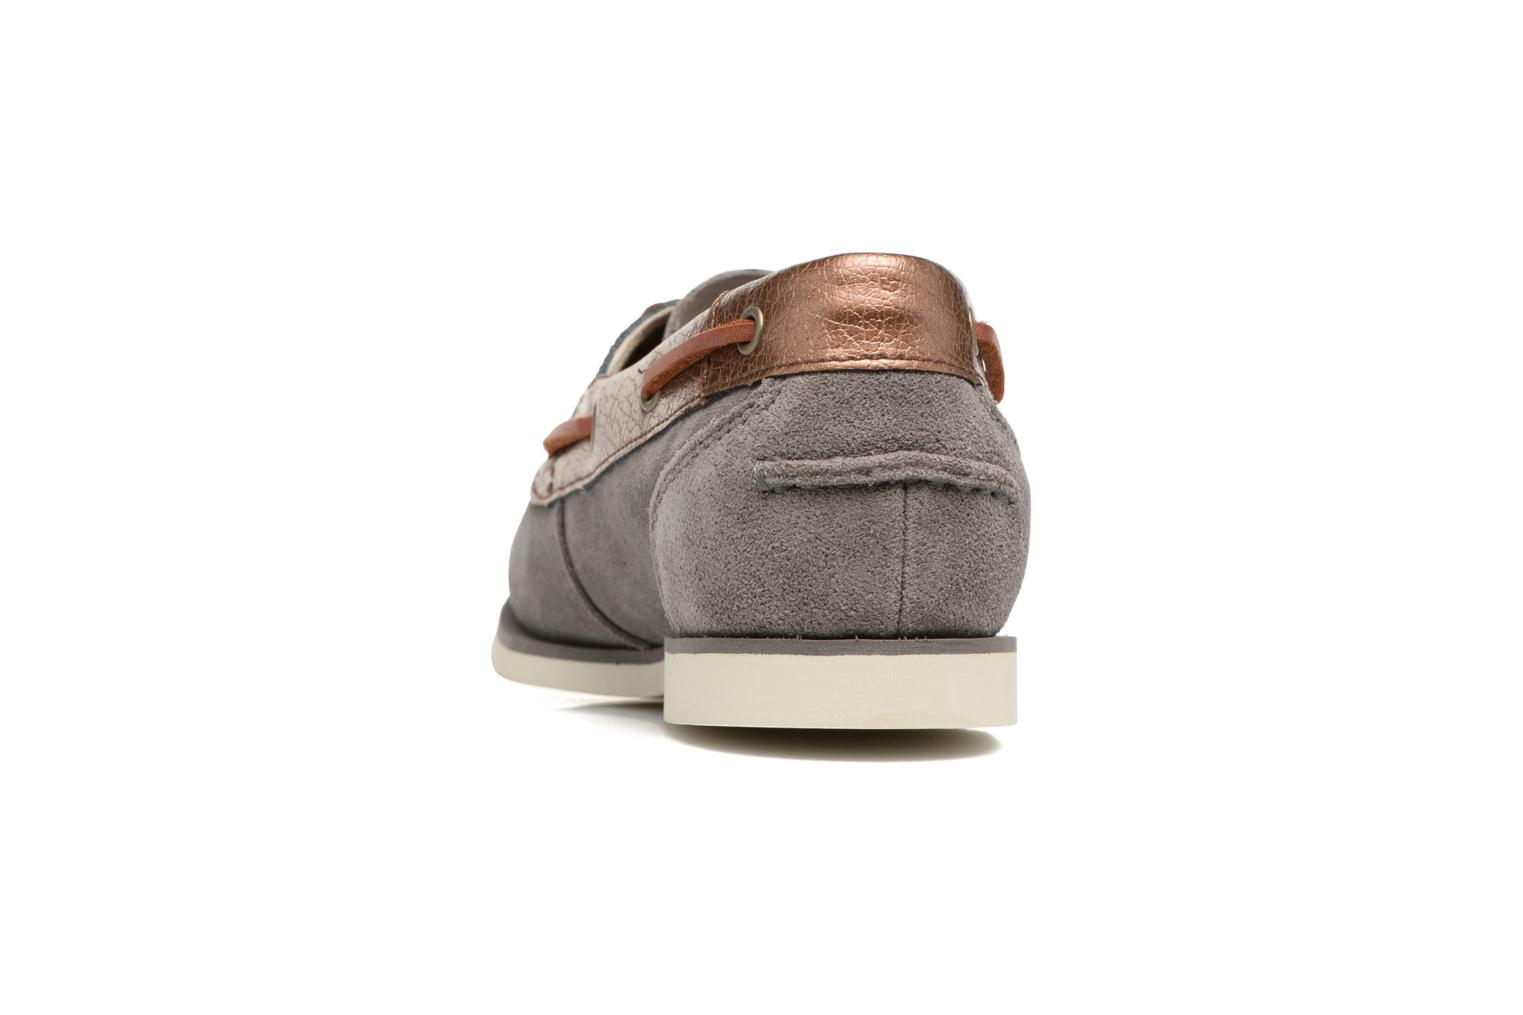 Chaussures à lacets Timberland Classic Boat Unlined Boat Gris vue droite